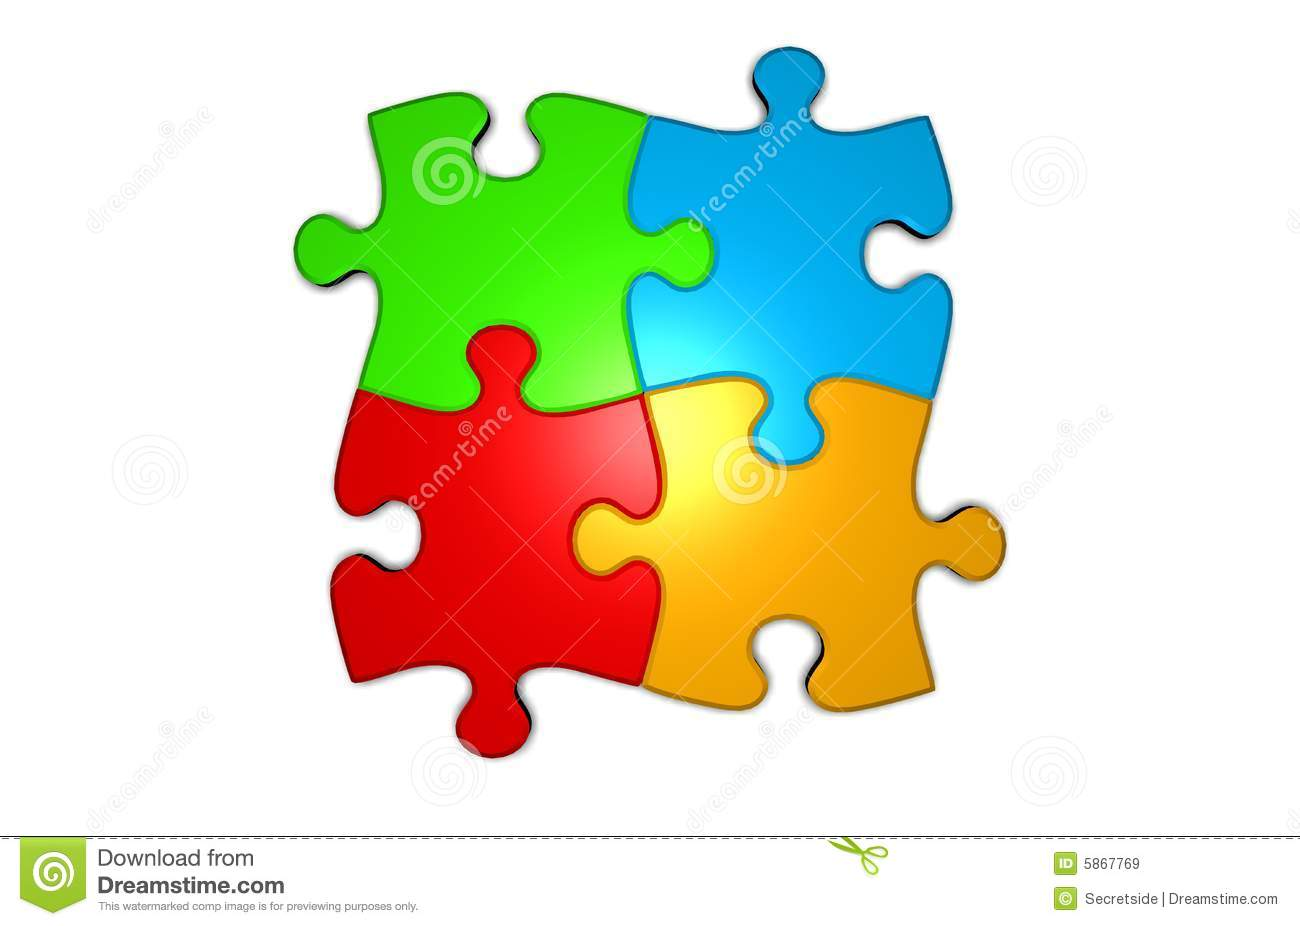 united states map puzzle for kids with Royalty Free Stock Images Puzzle Logo Image5867769 on Stock Illustration Rooster Animal Cartoon Illustration Children Colorful Vector Image60975657 also Stock Illustration Put All Together Puzzle Pieces Solve Mystery Problem Solving Seeing Full Total Picture Image56609285 also Printable Word Search Puzzles likewise B000GKAU1I additionally 2.